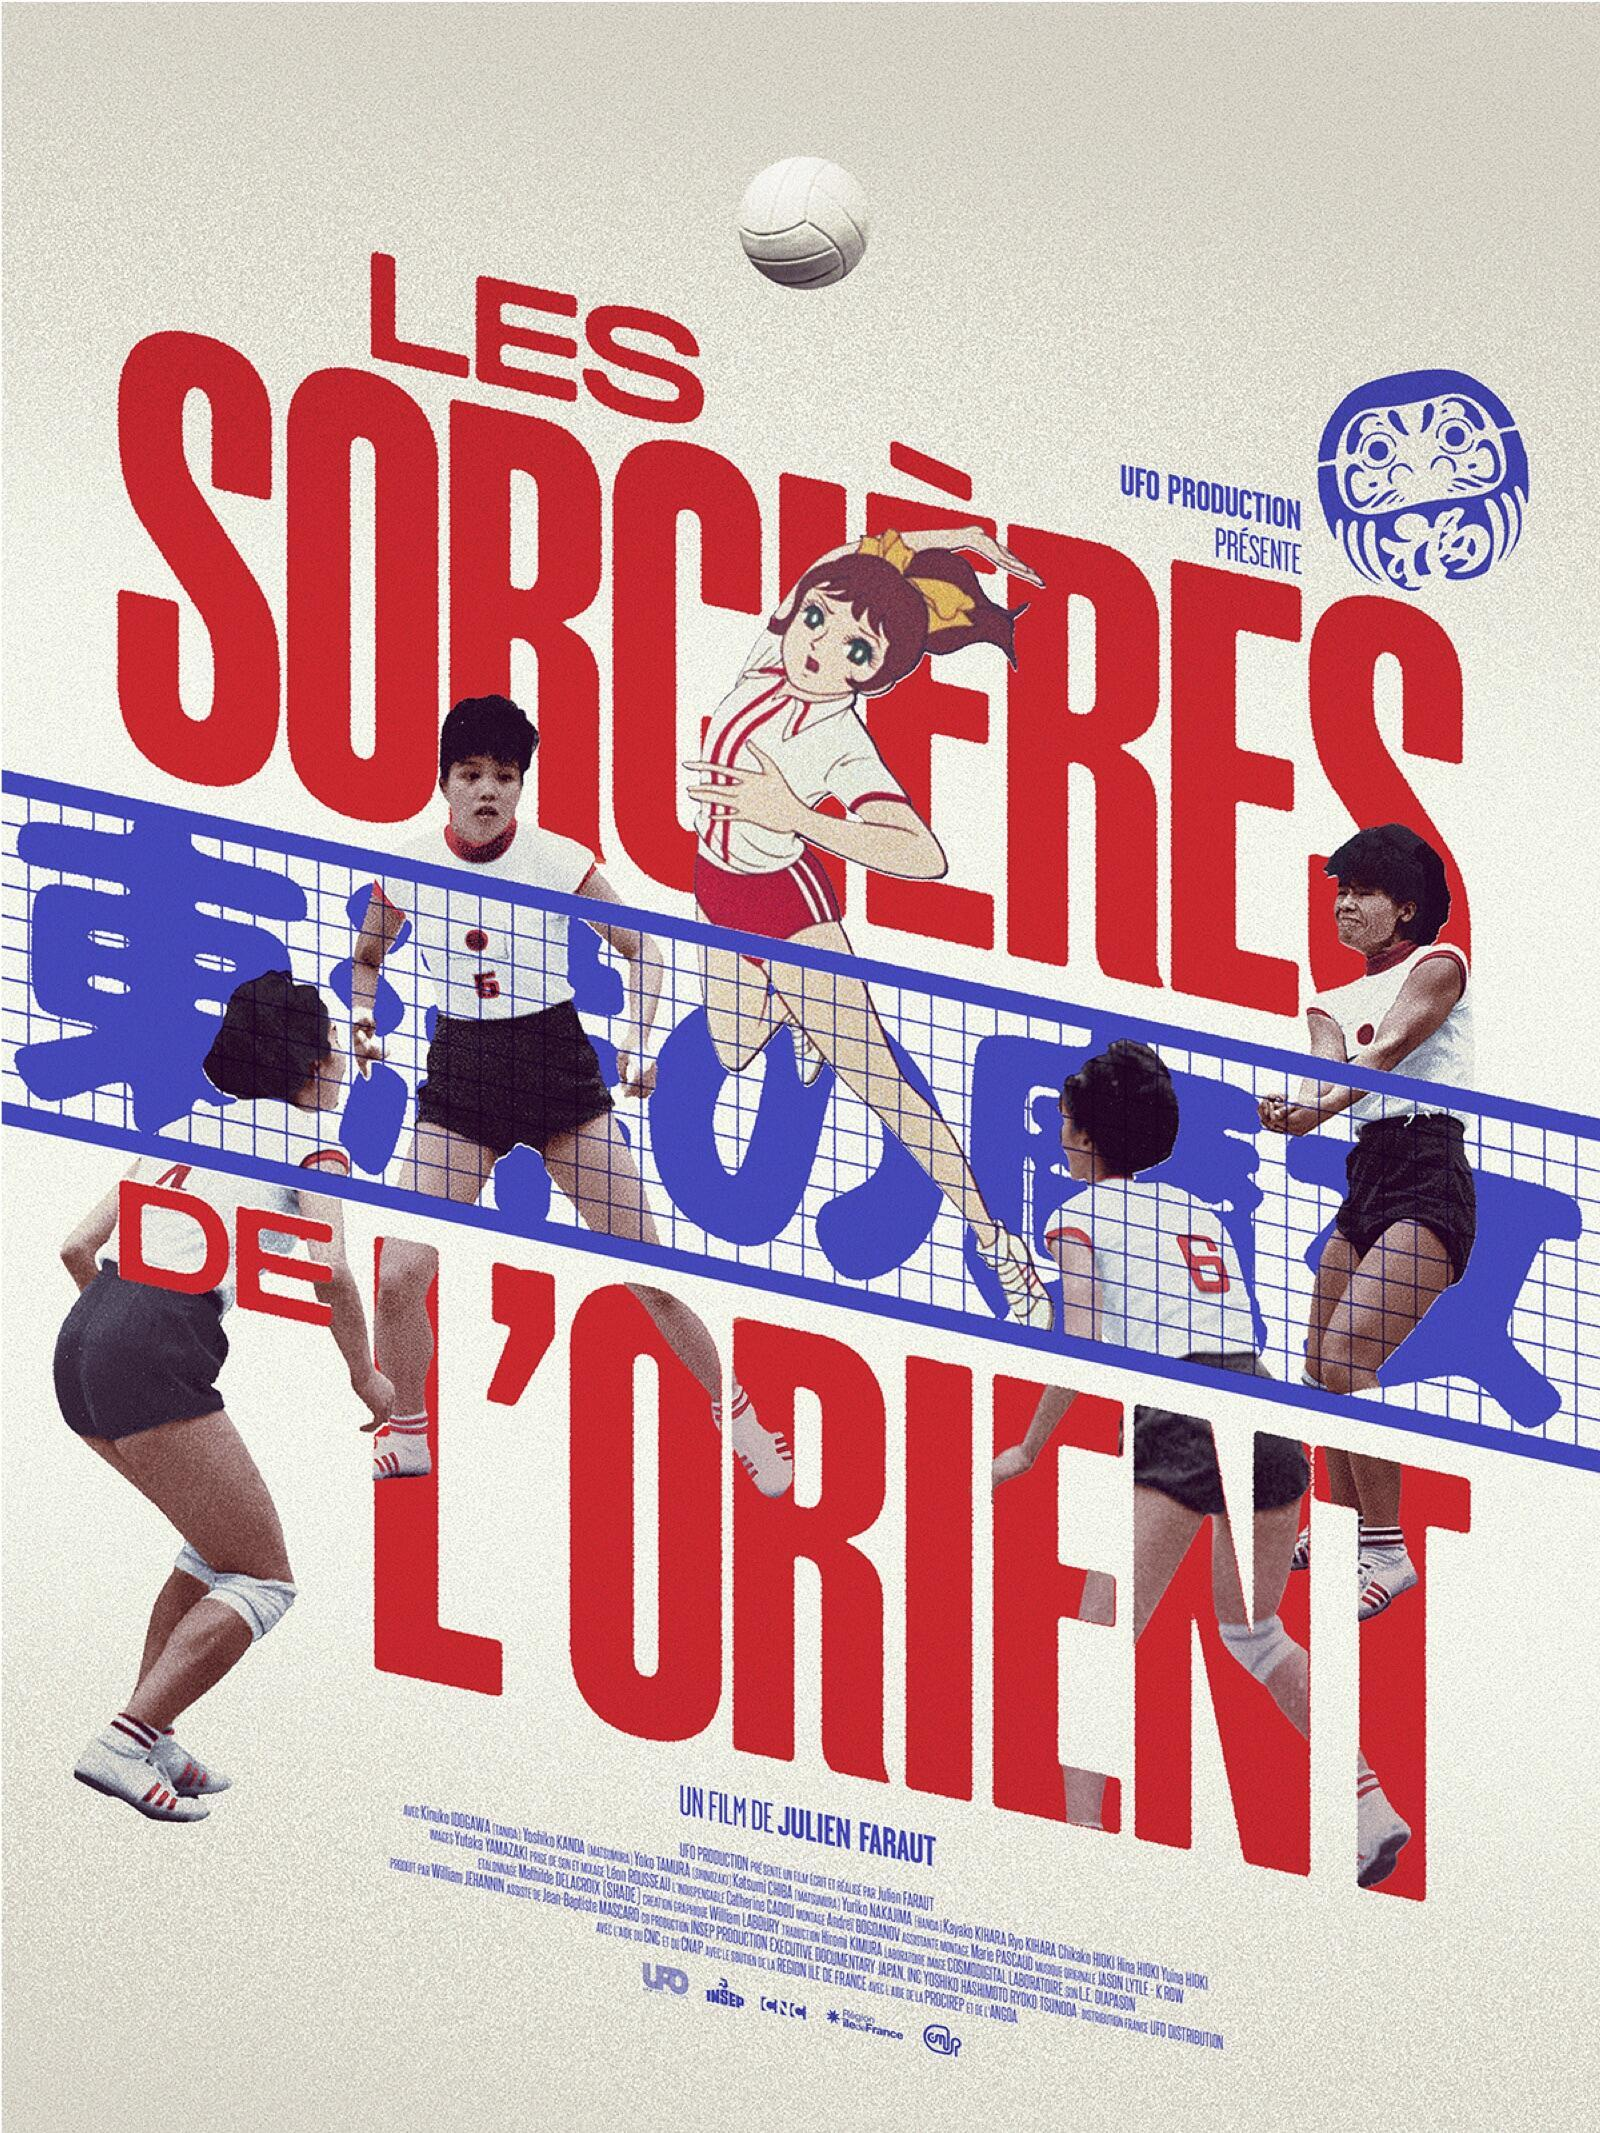 Julien Faraut's film Les Sorcières de l'Orient follows the spectacular training regime and victories of the legendary Japanese women's volley ball team from the early 1960s.